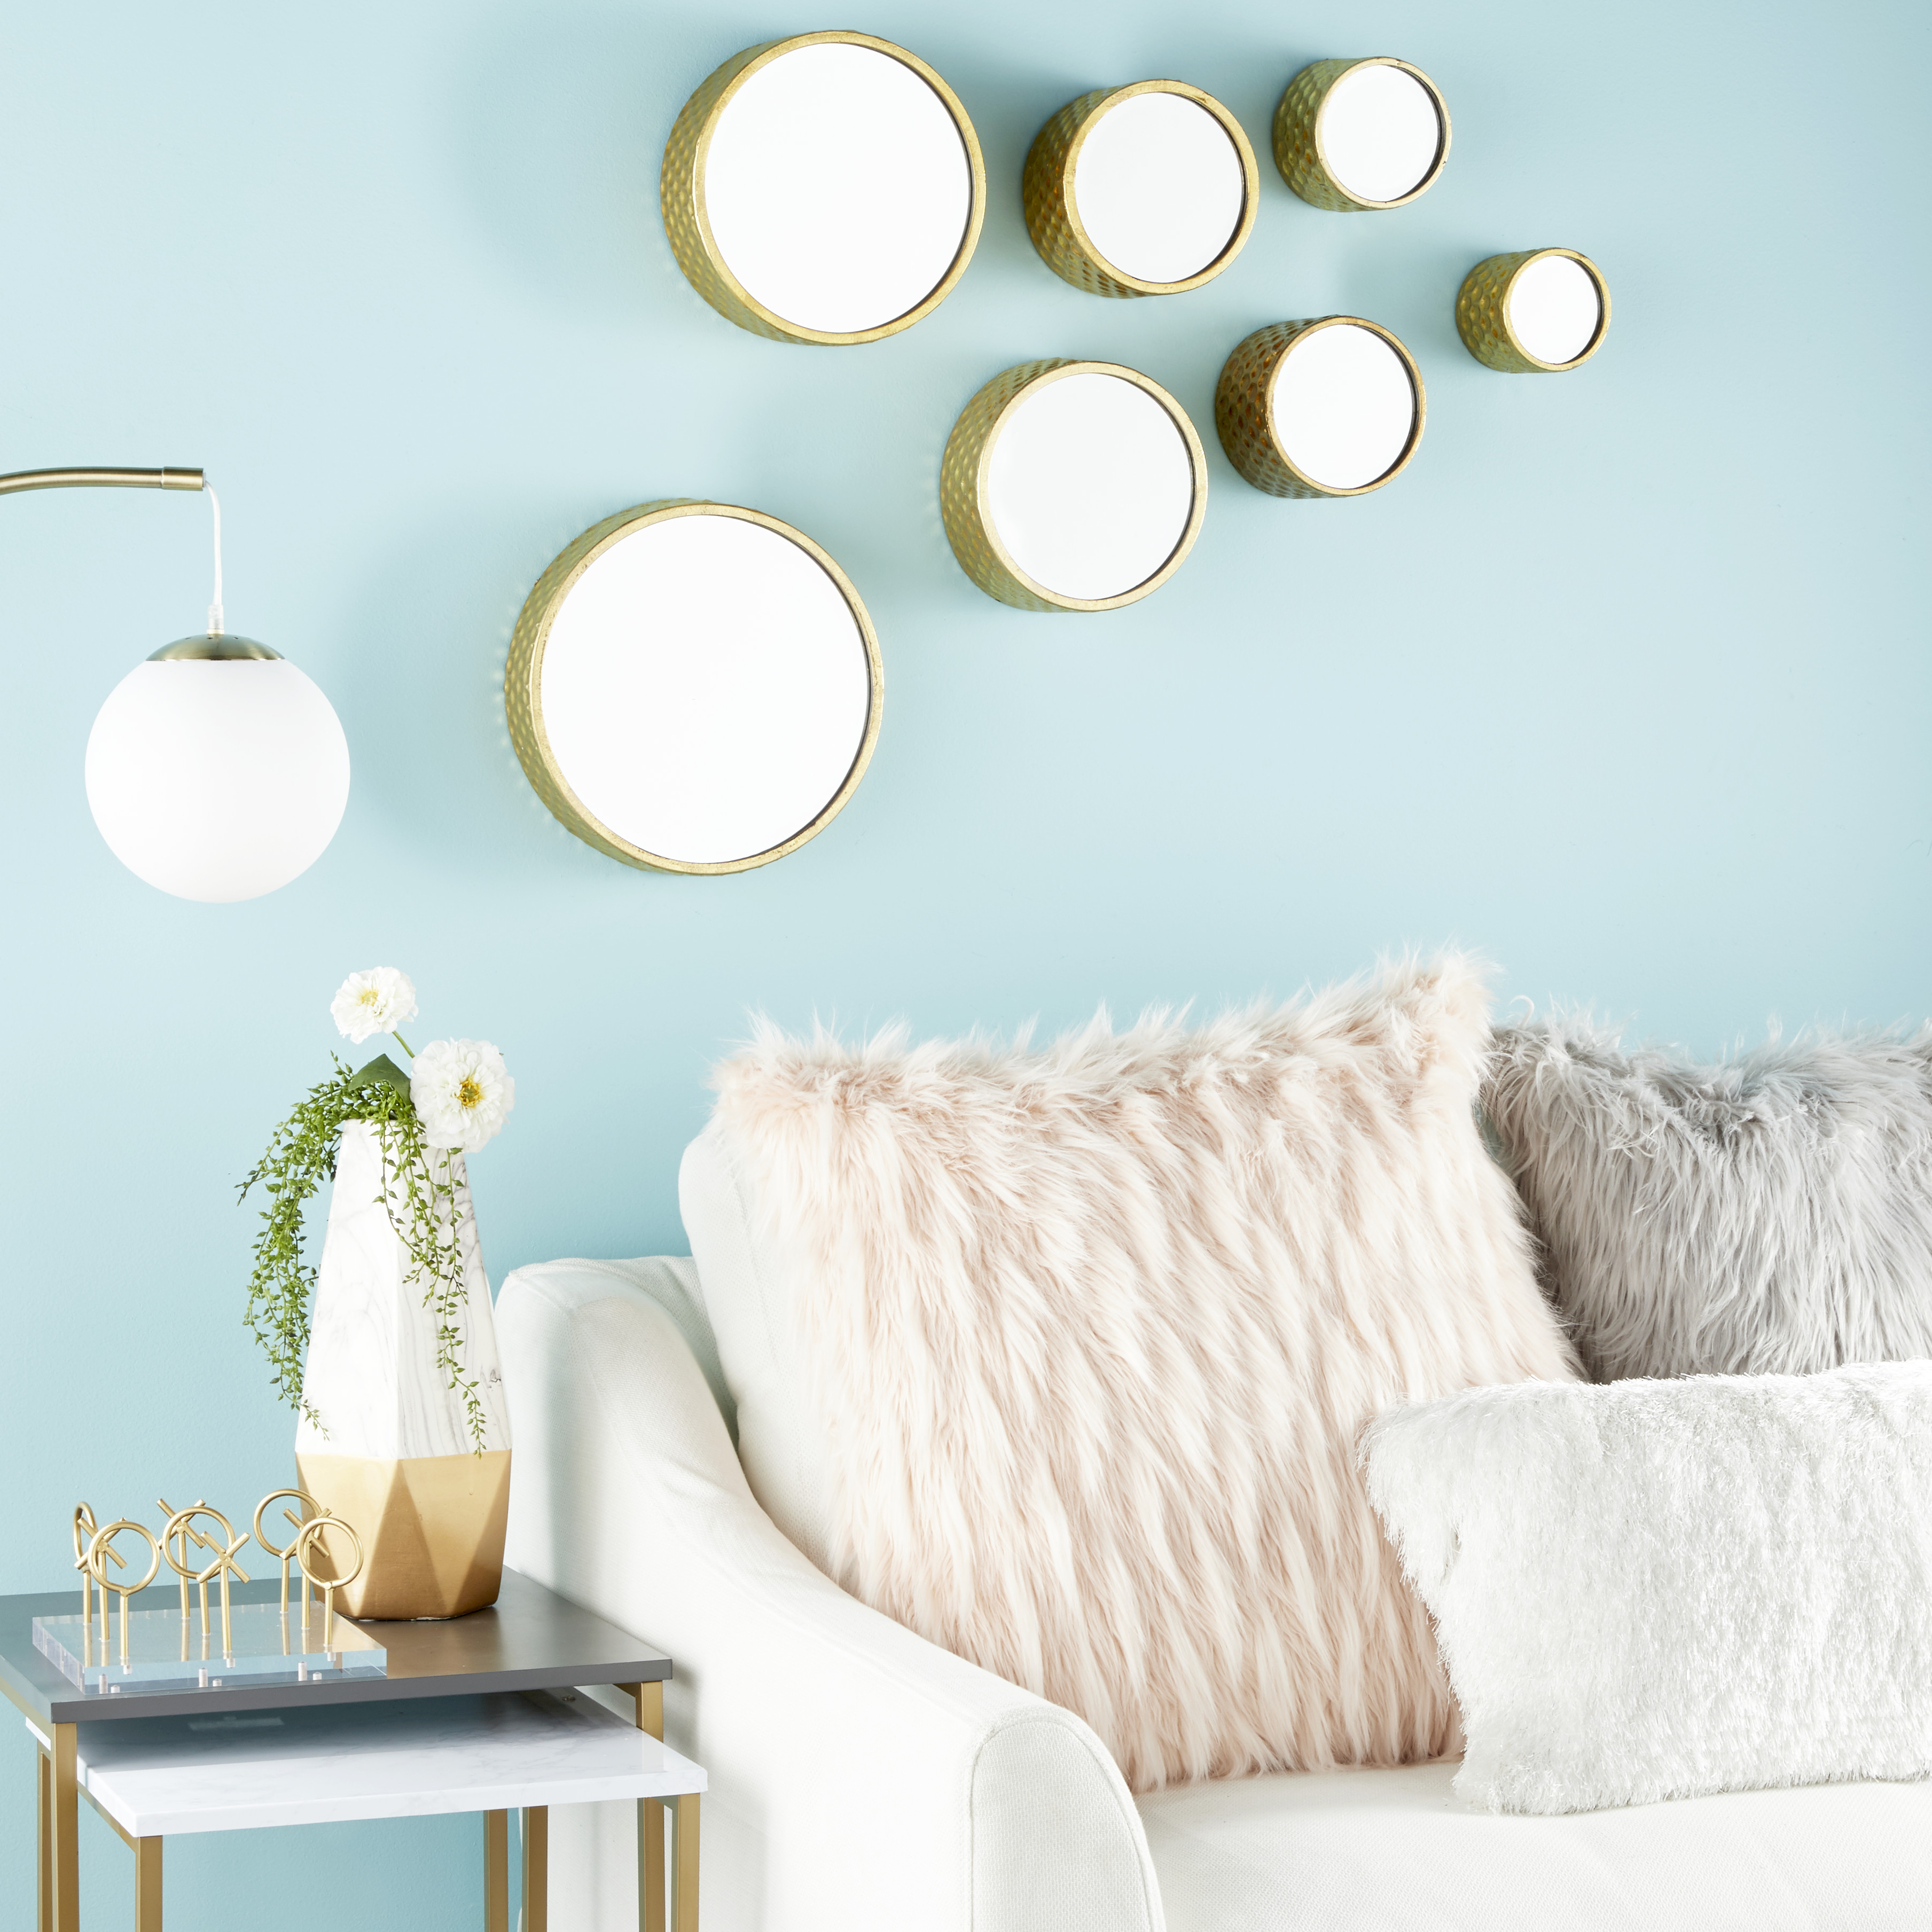 Well Known Decorative Wall Mirrors For Living Room With Regard To Cosmoliving Small, Round Metallic Gold Hammered Metal Decorative Wall Mirrors (View 15 of 20)